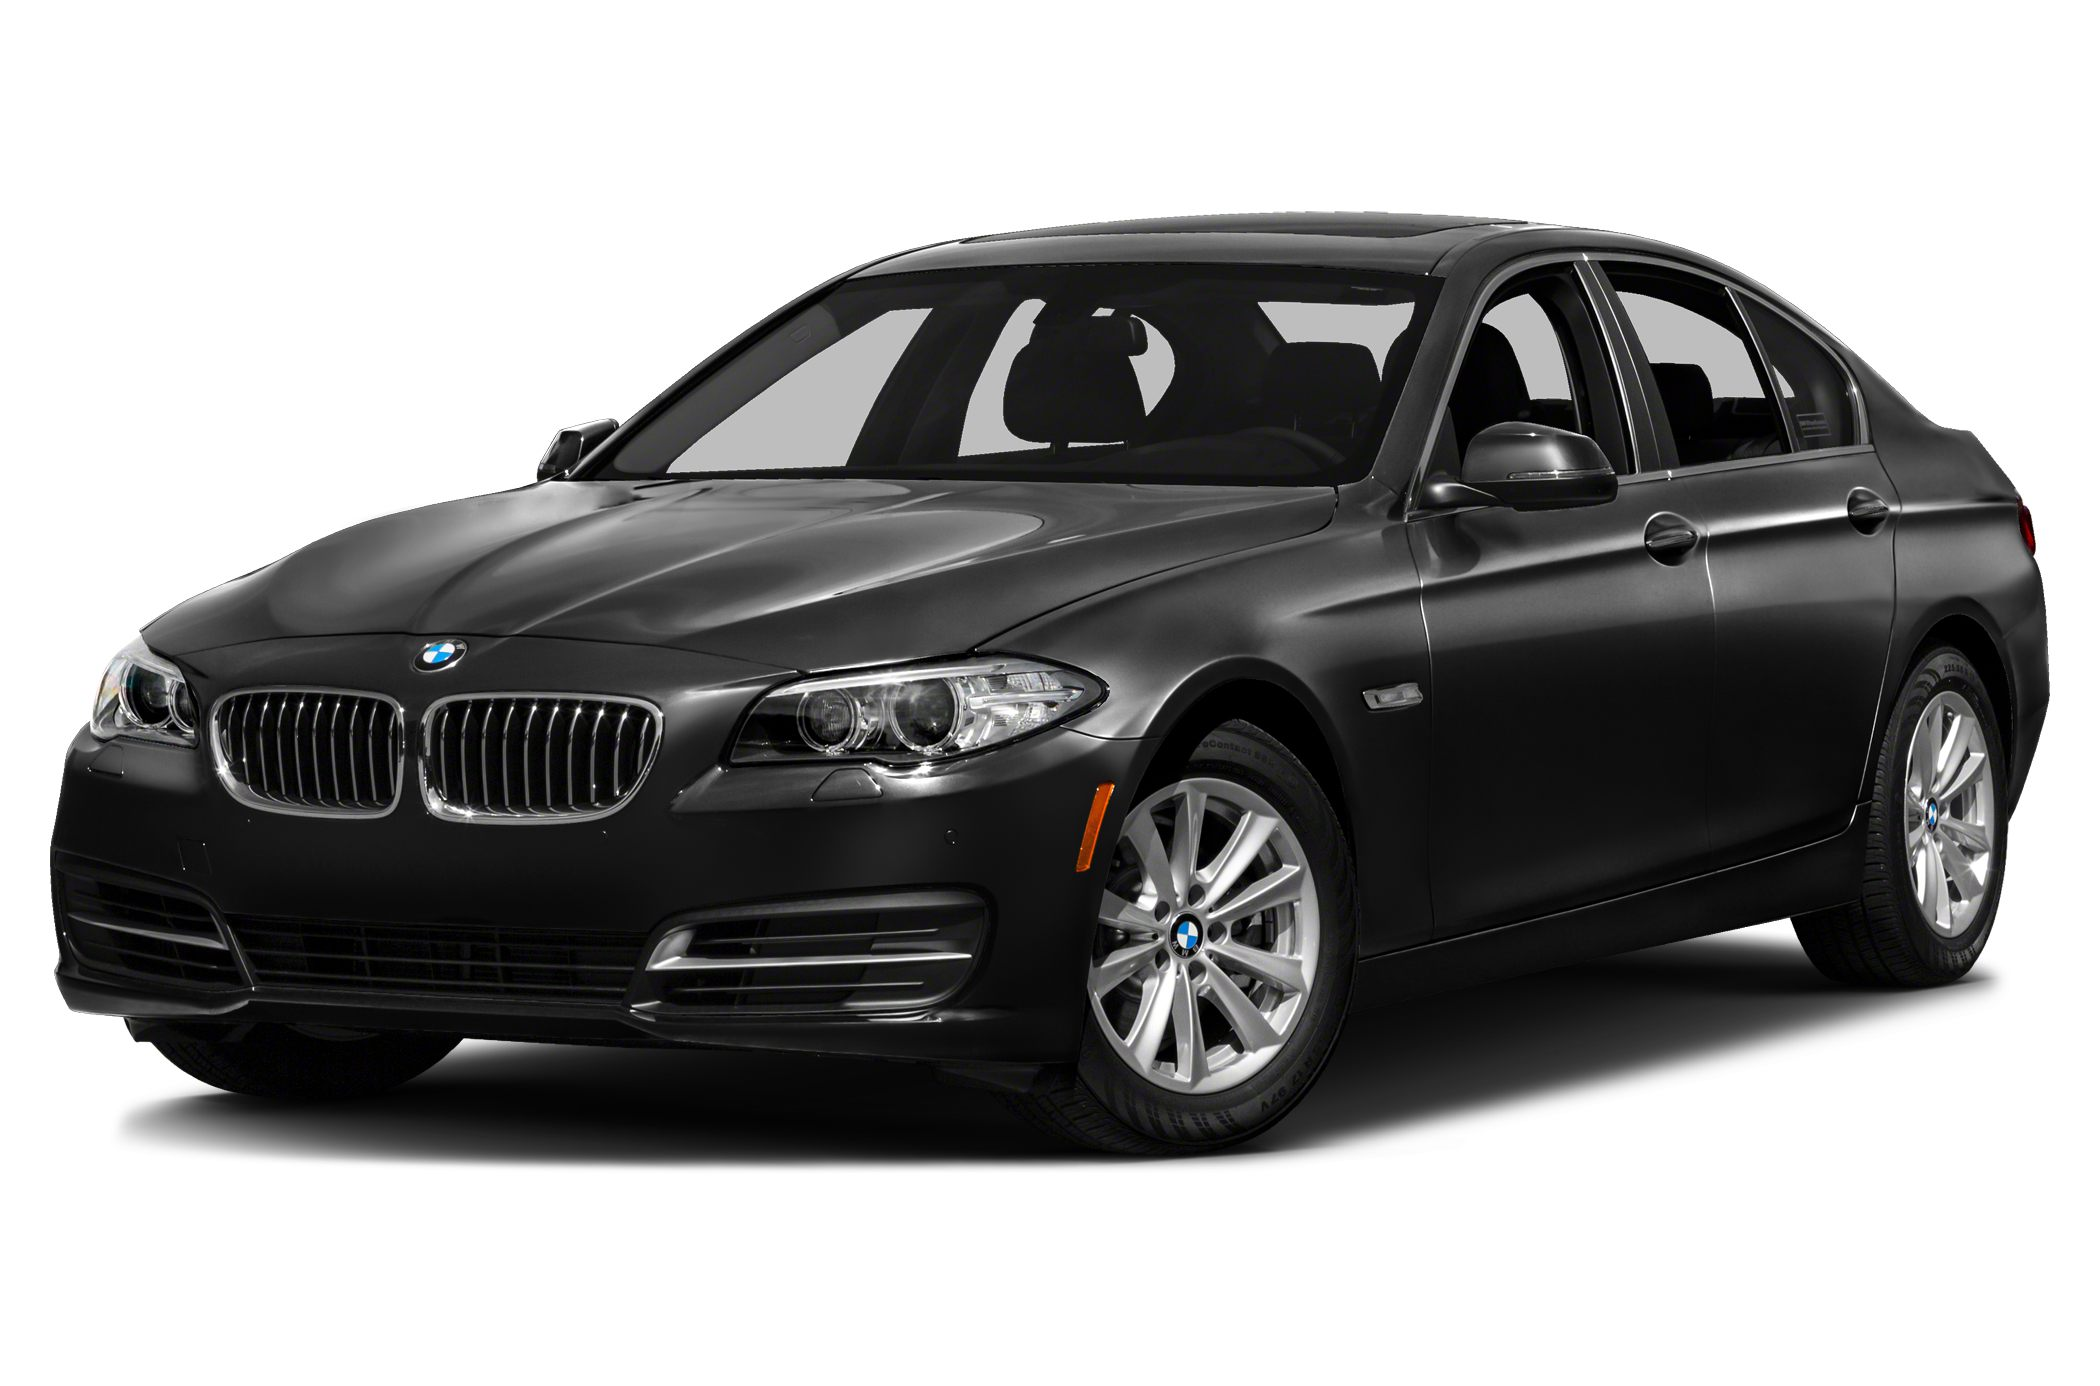 2015 BMW 528 I XDrive Sedan for sale in Mechanicsburg for $59,100 with 6 miles